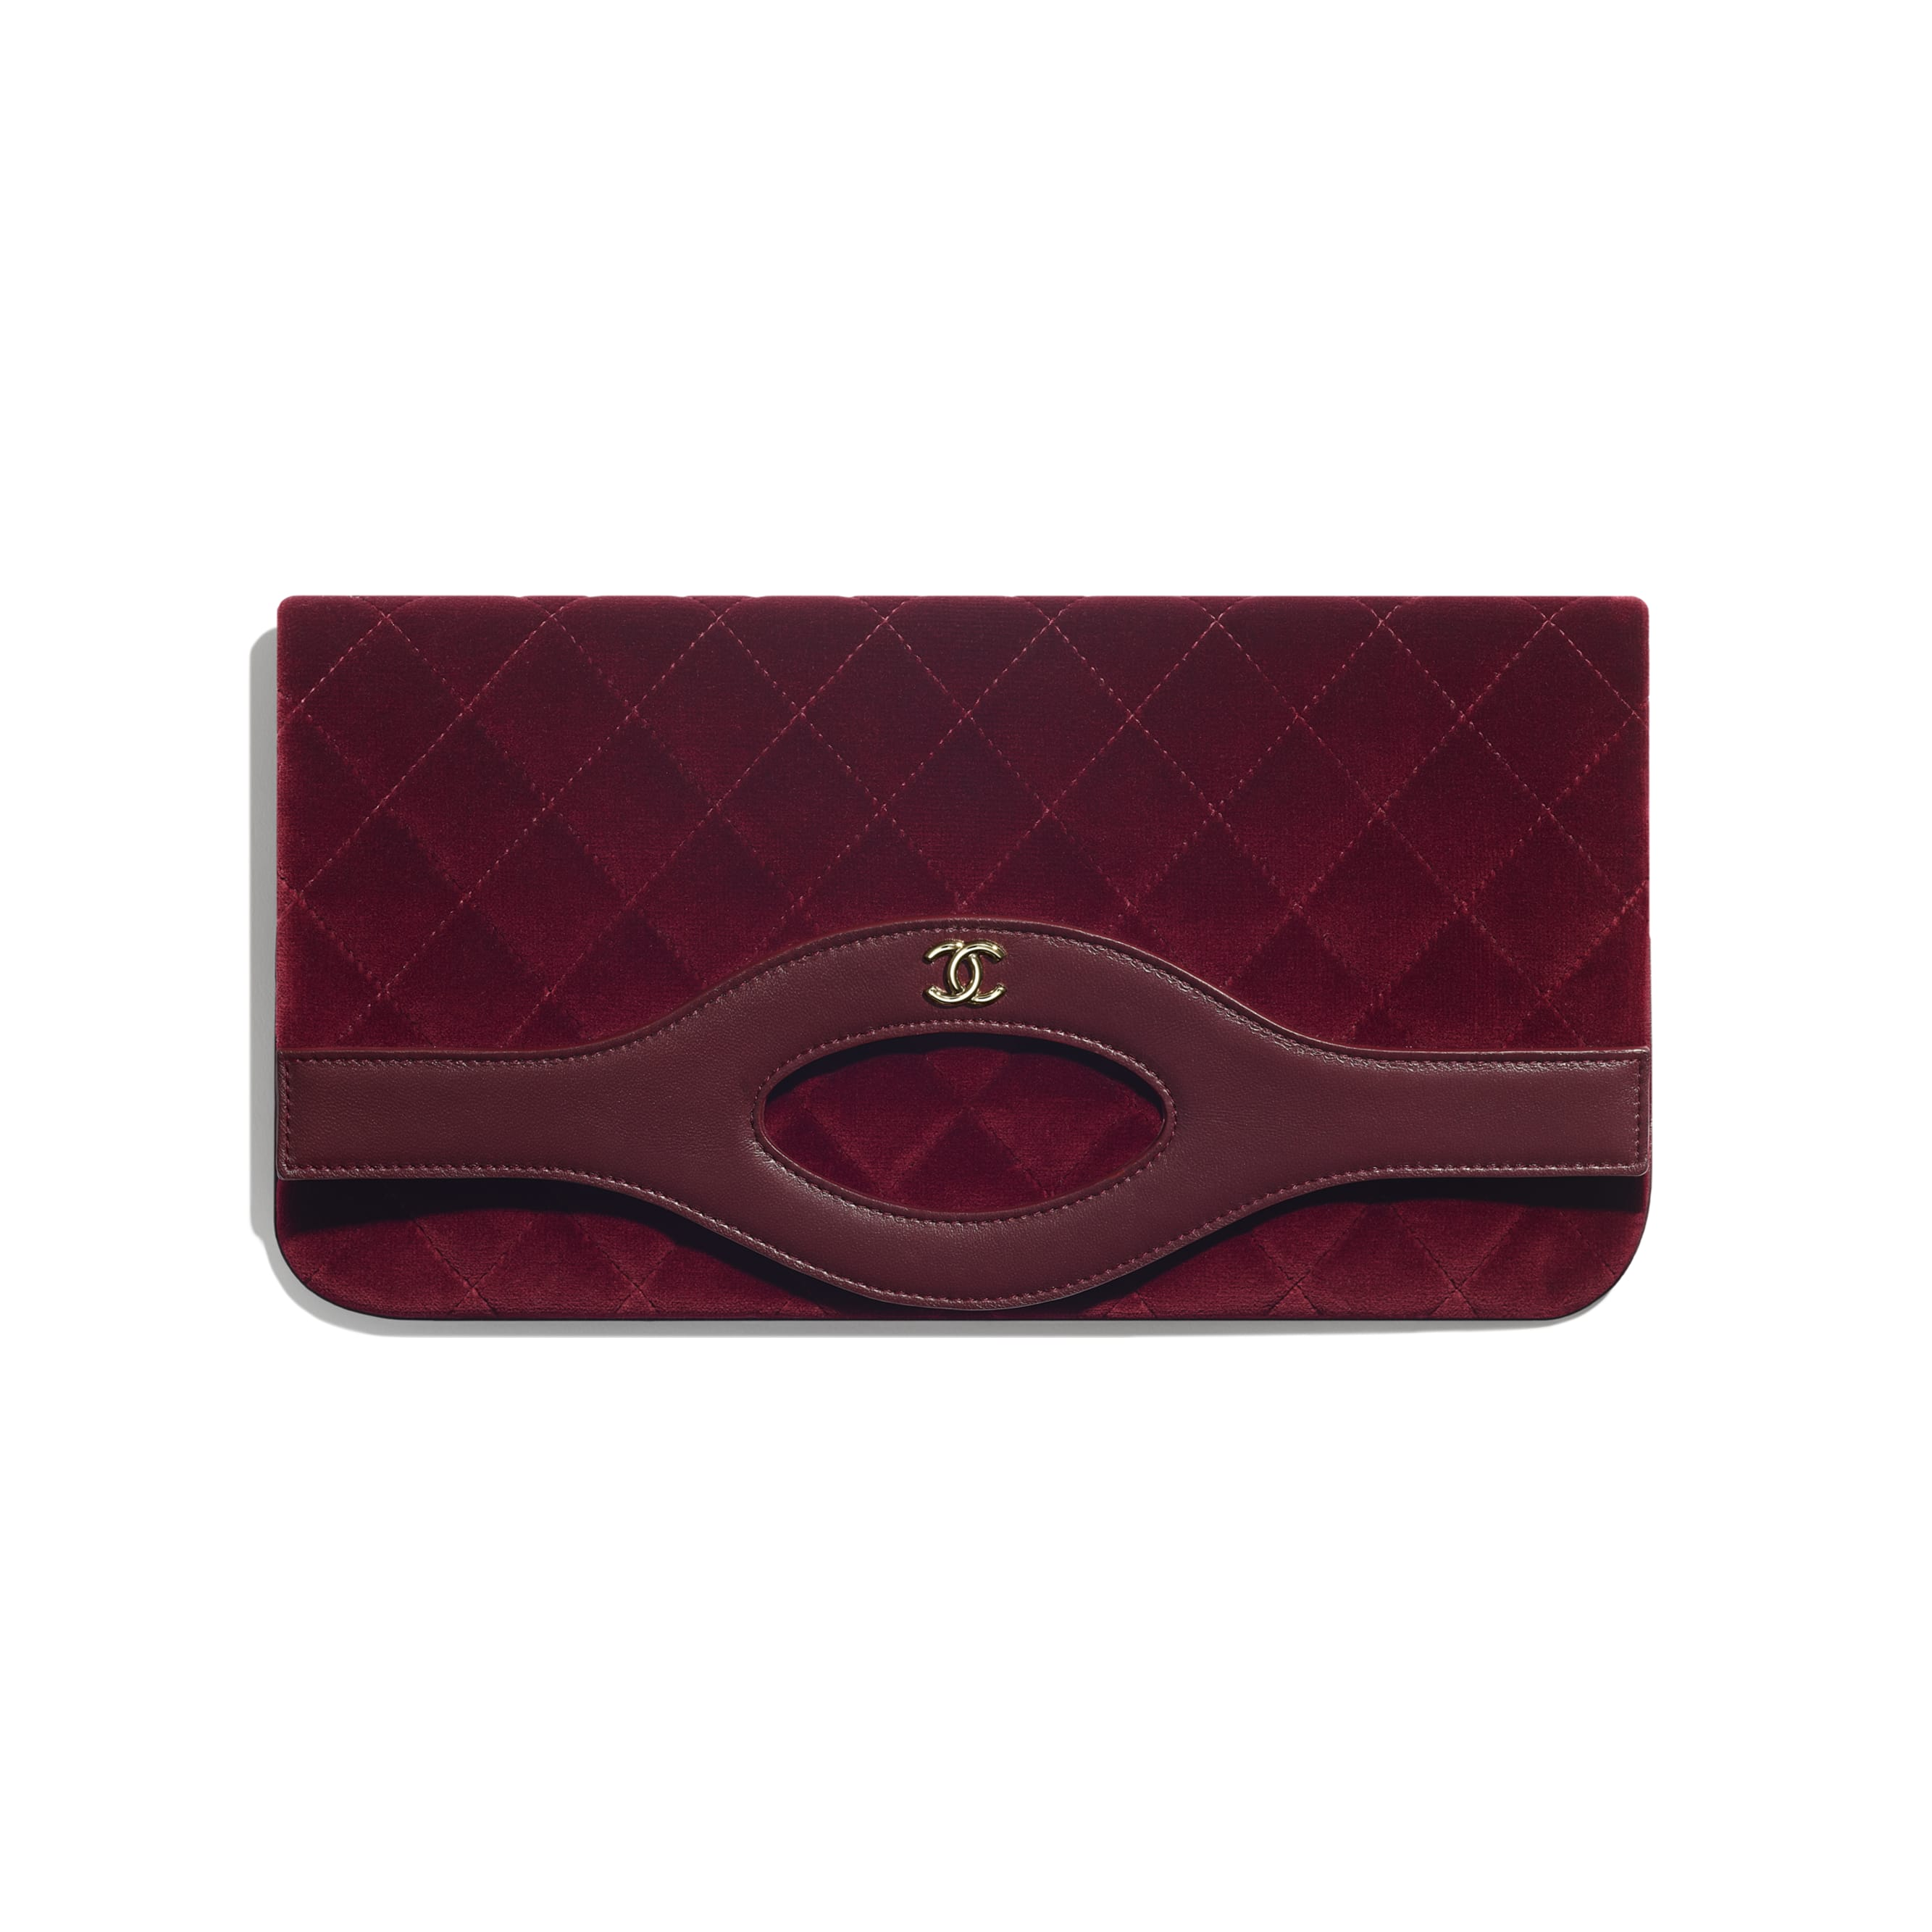 CHANEL 31 Pouch - Burgundy - Velvet, Lambskin & Gold-Tone Metal - Default view - see standard sized version